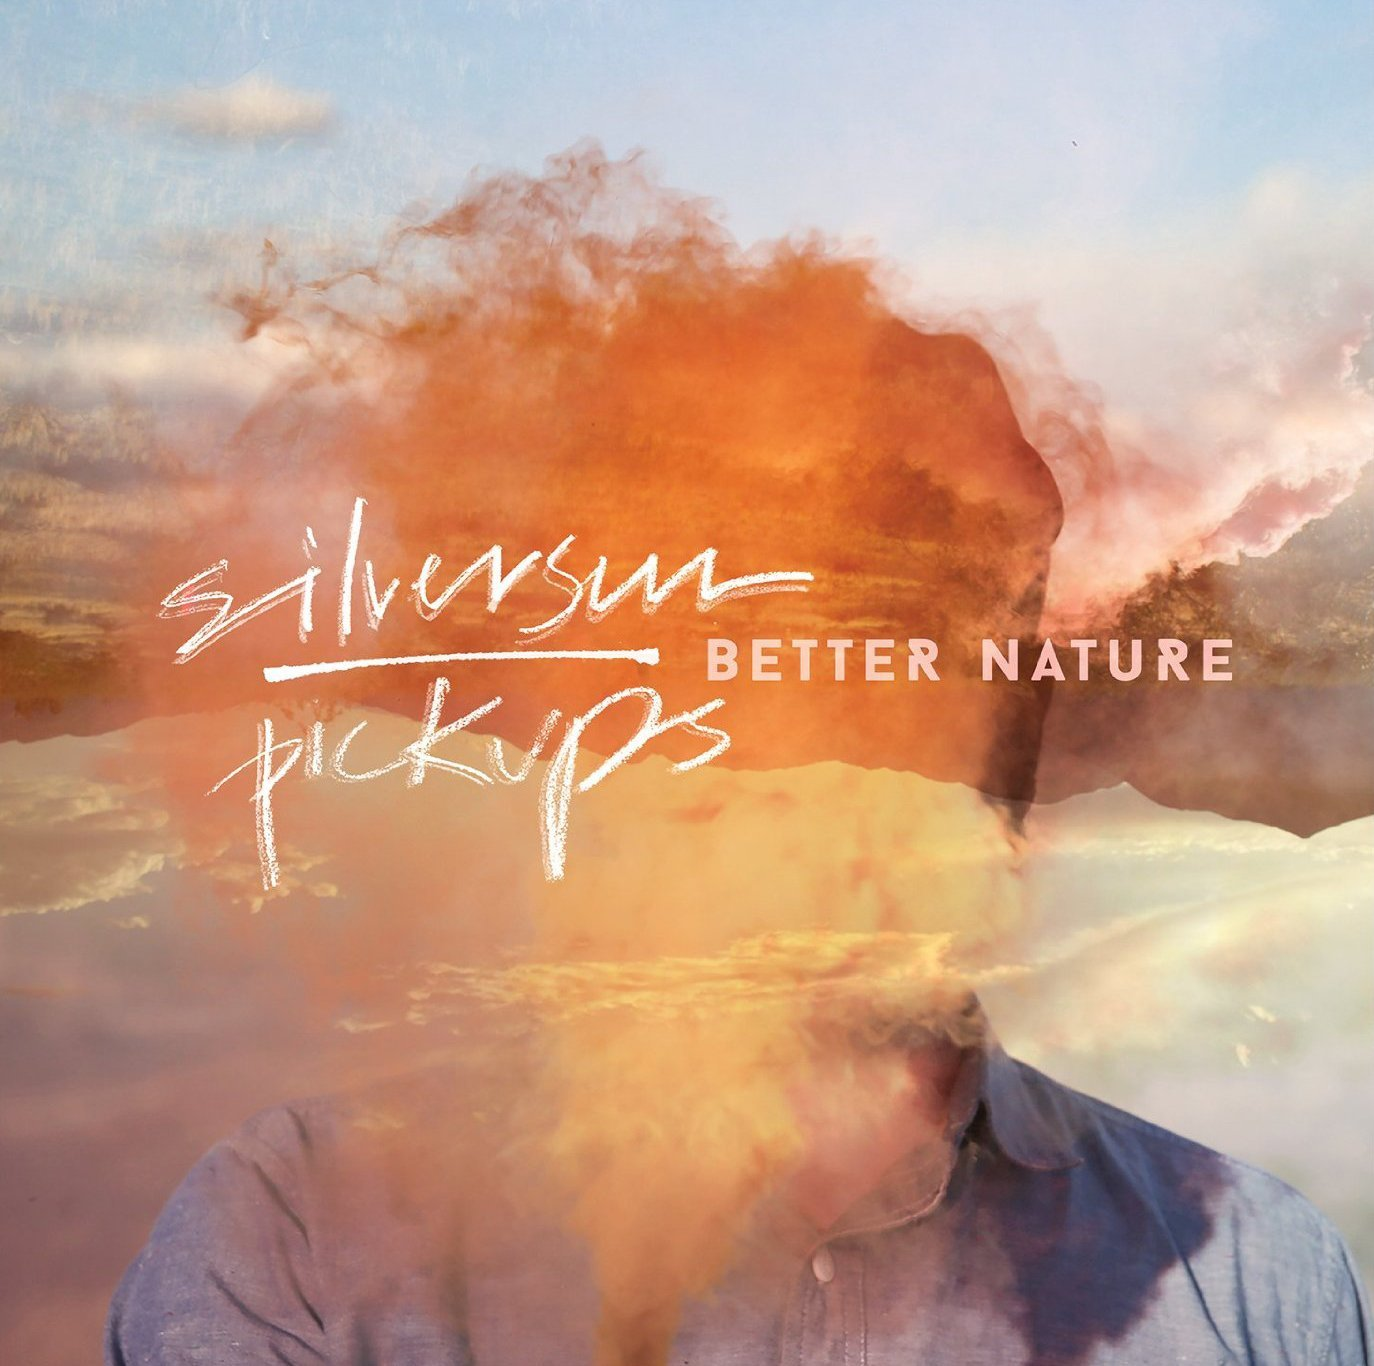 Silversun Pickups: Better Nature [Album Review]